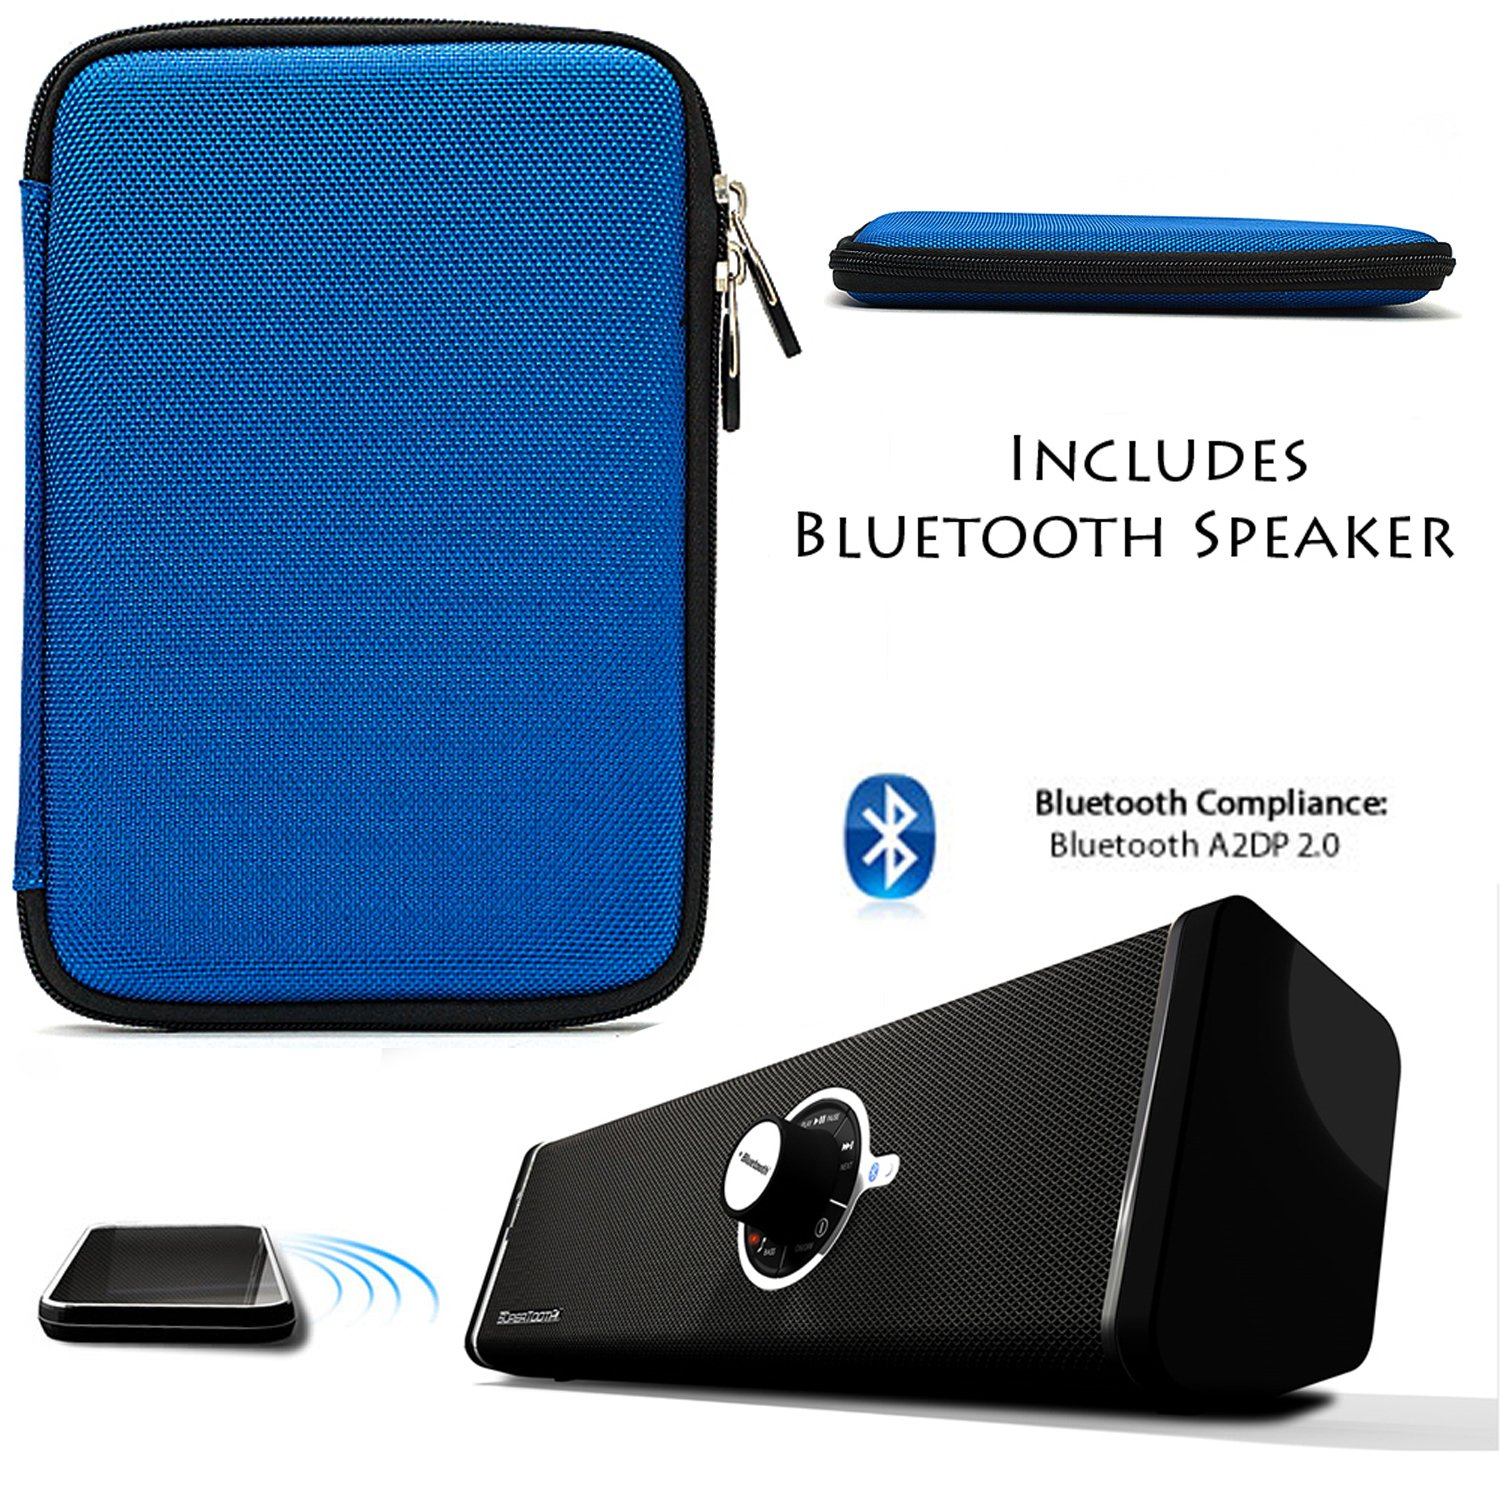 BLUE Protective Durable Hard Cube Nylon Carrying Case, Lightweight Hard Shell Cover For Samsung Galaxy Tab 3 Android Tablet 7-inch Display Thinner Bezel + Supertooth Disco Bluetooth Speaker with AUX Cable